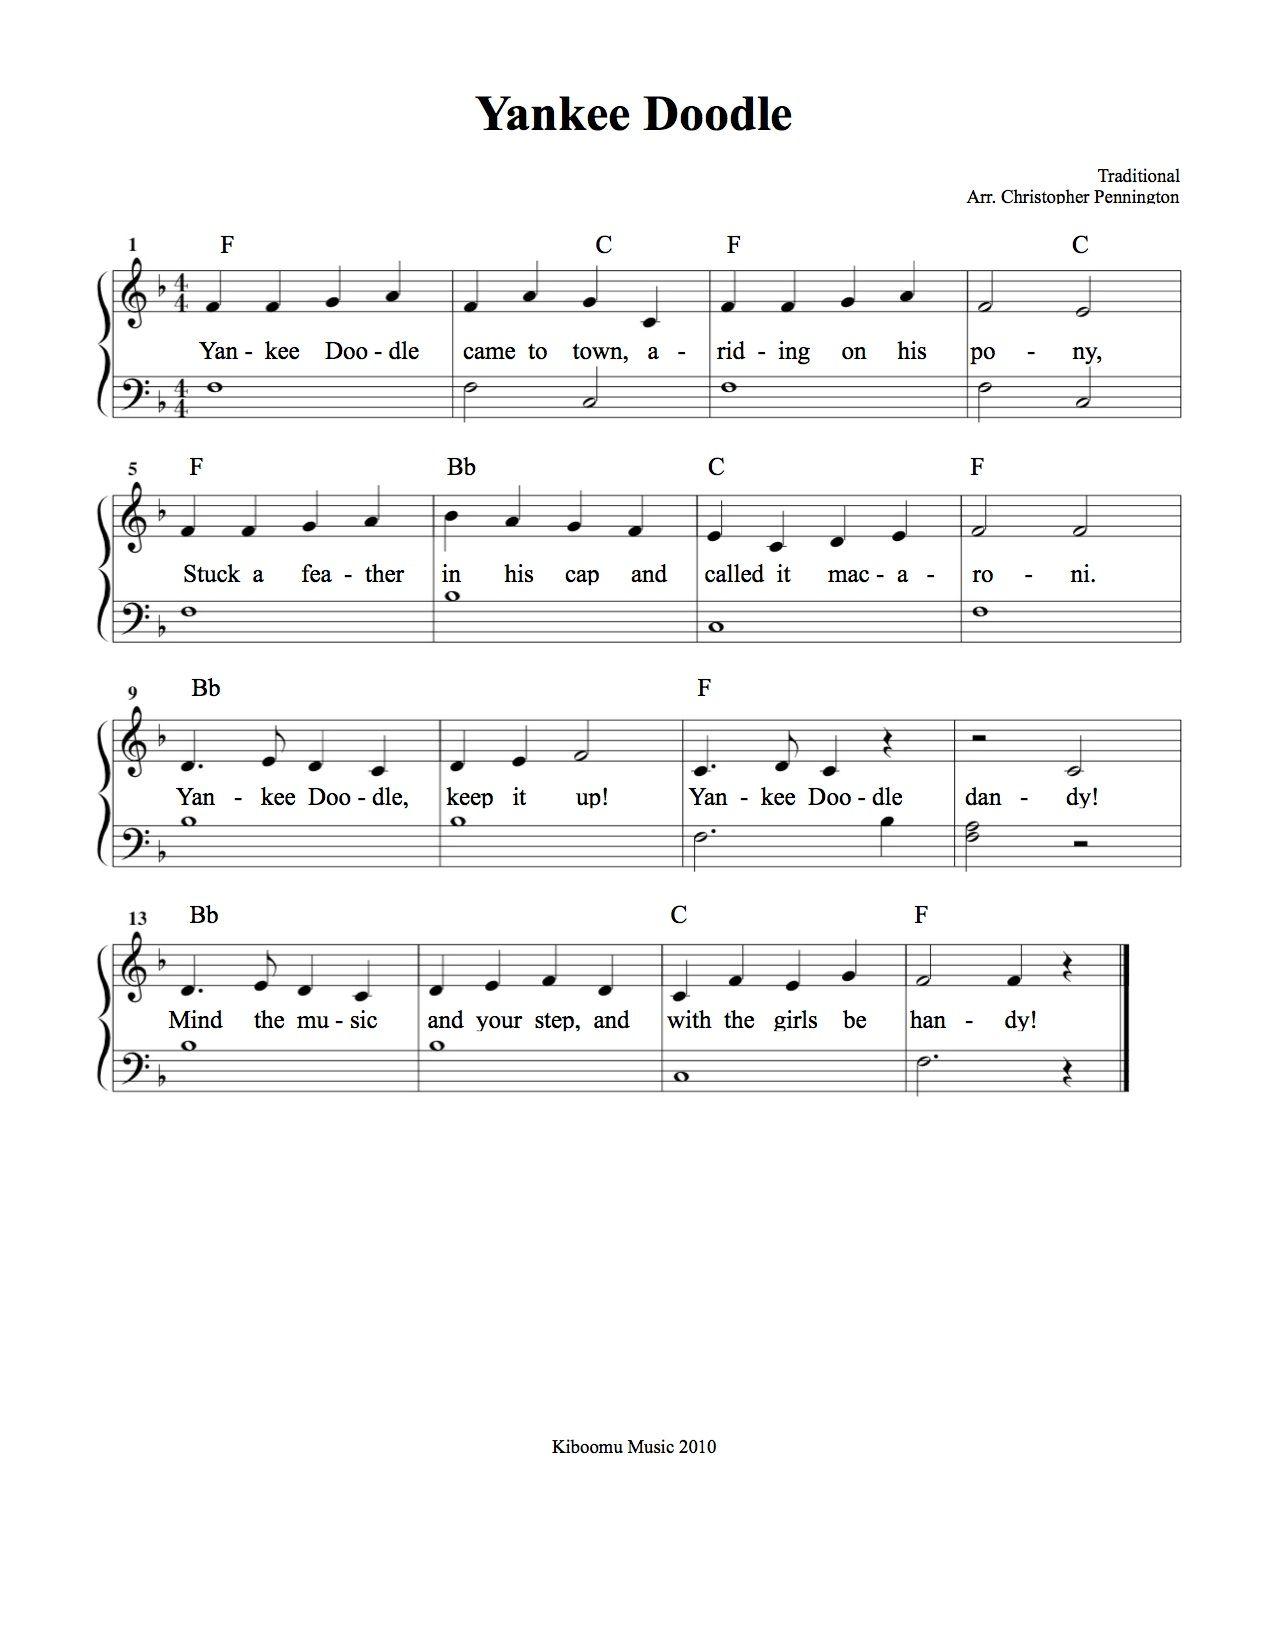 Yankee Doodle Sheet Music And Song From Kiboomu With Images